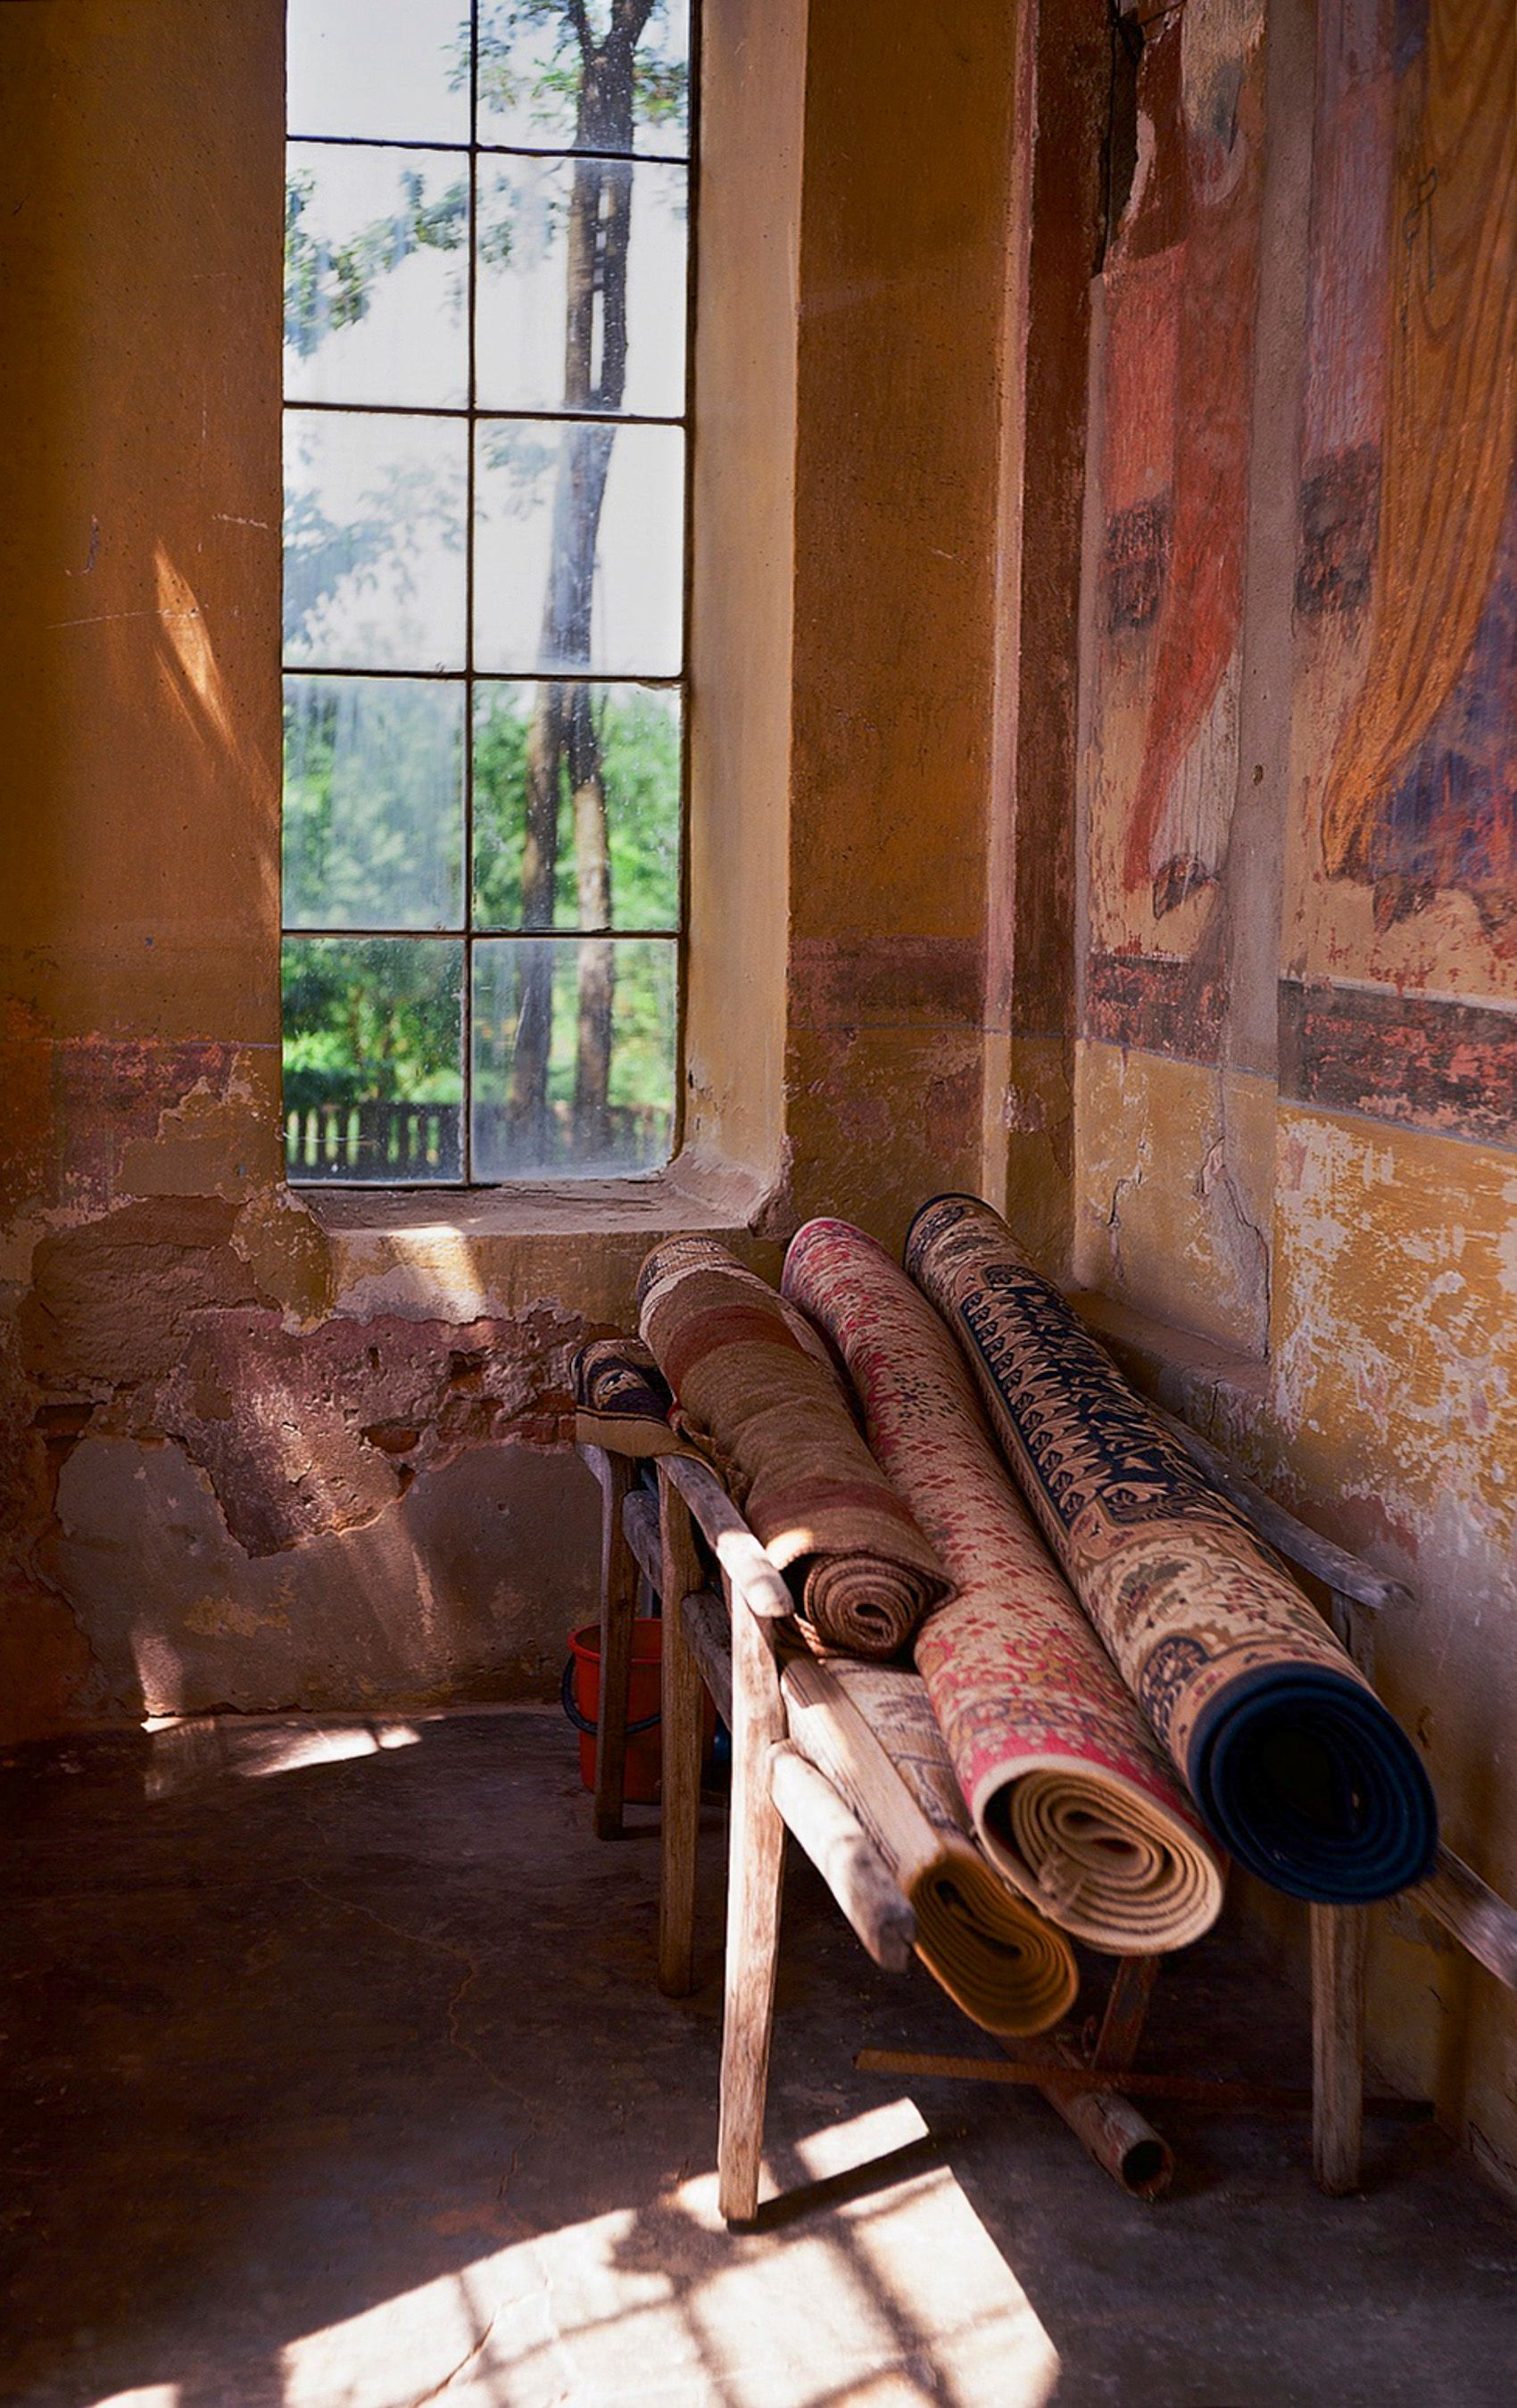 Rolled Rugs in Orthodox CHurch